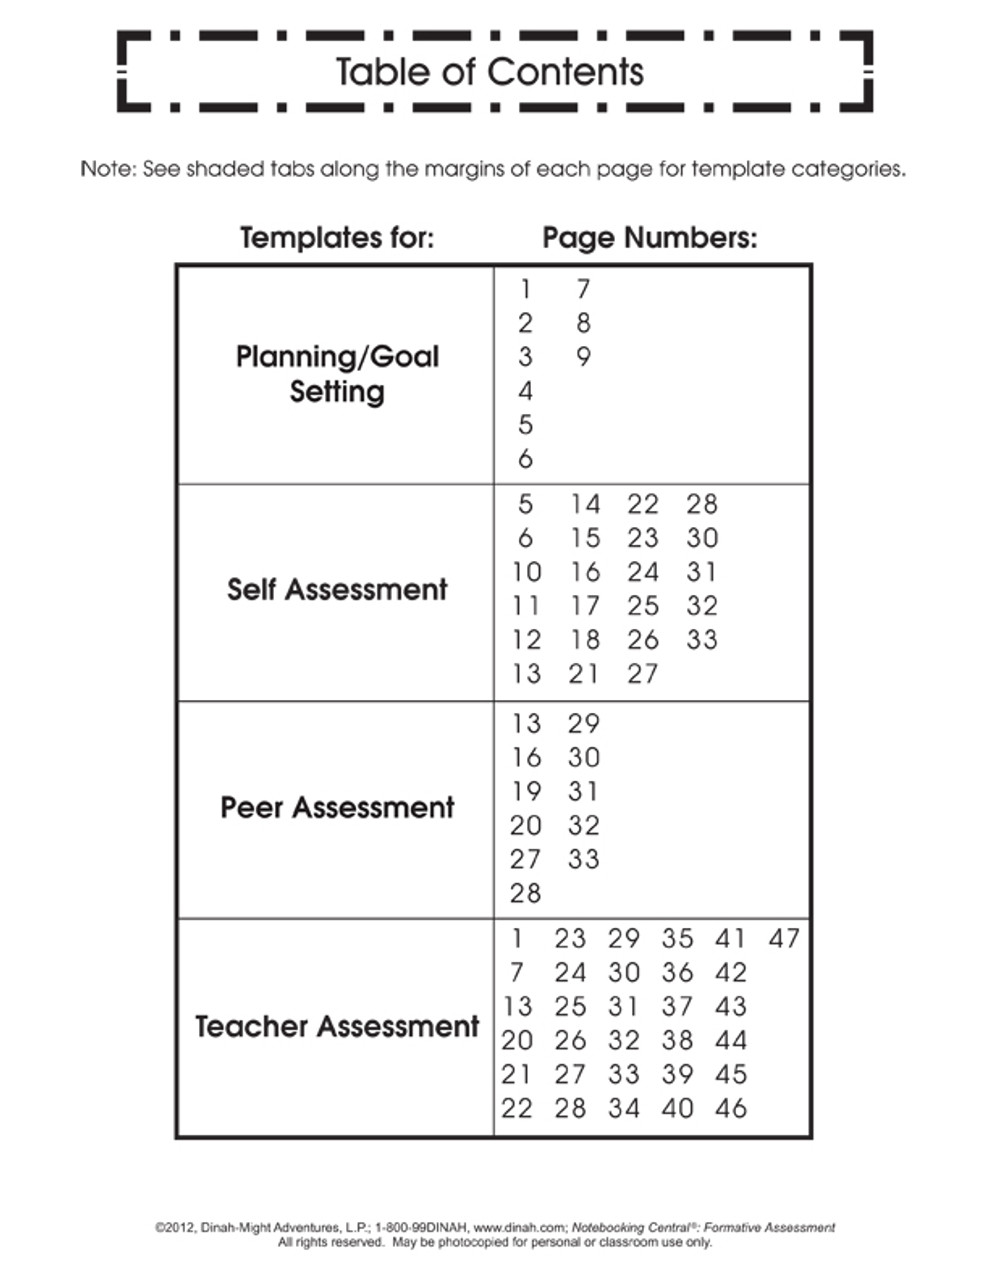 Dinah Zike S Notebooking Central Notebook Foldables Formative Assessment Dinah Com